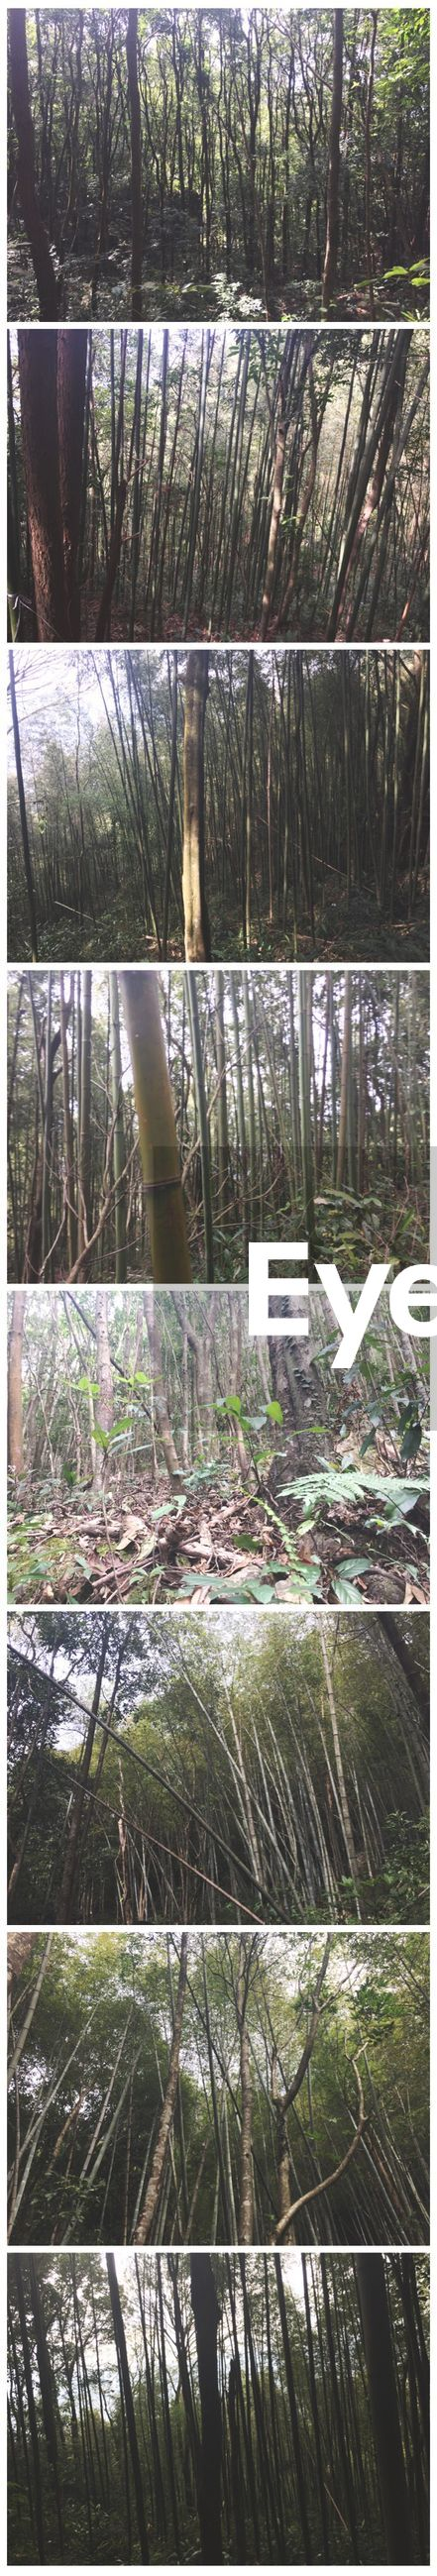 day, no people, outdoors, growth, nature, tree, greenhouse, bamboo grove